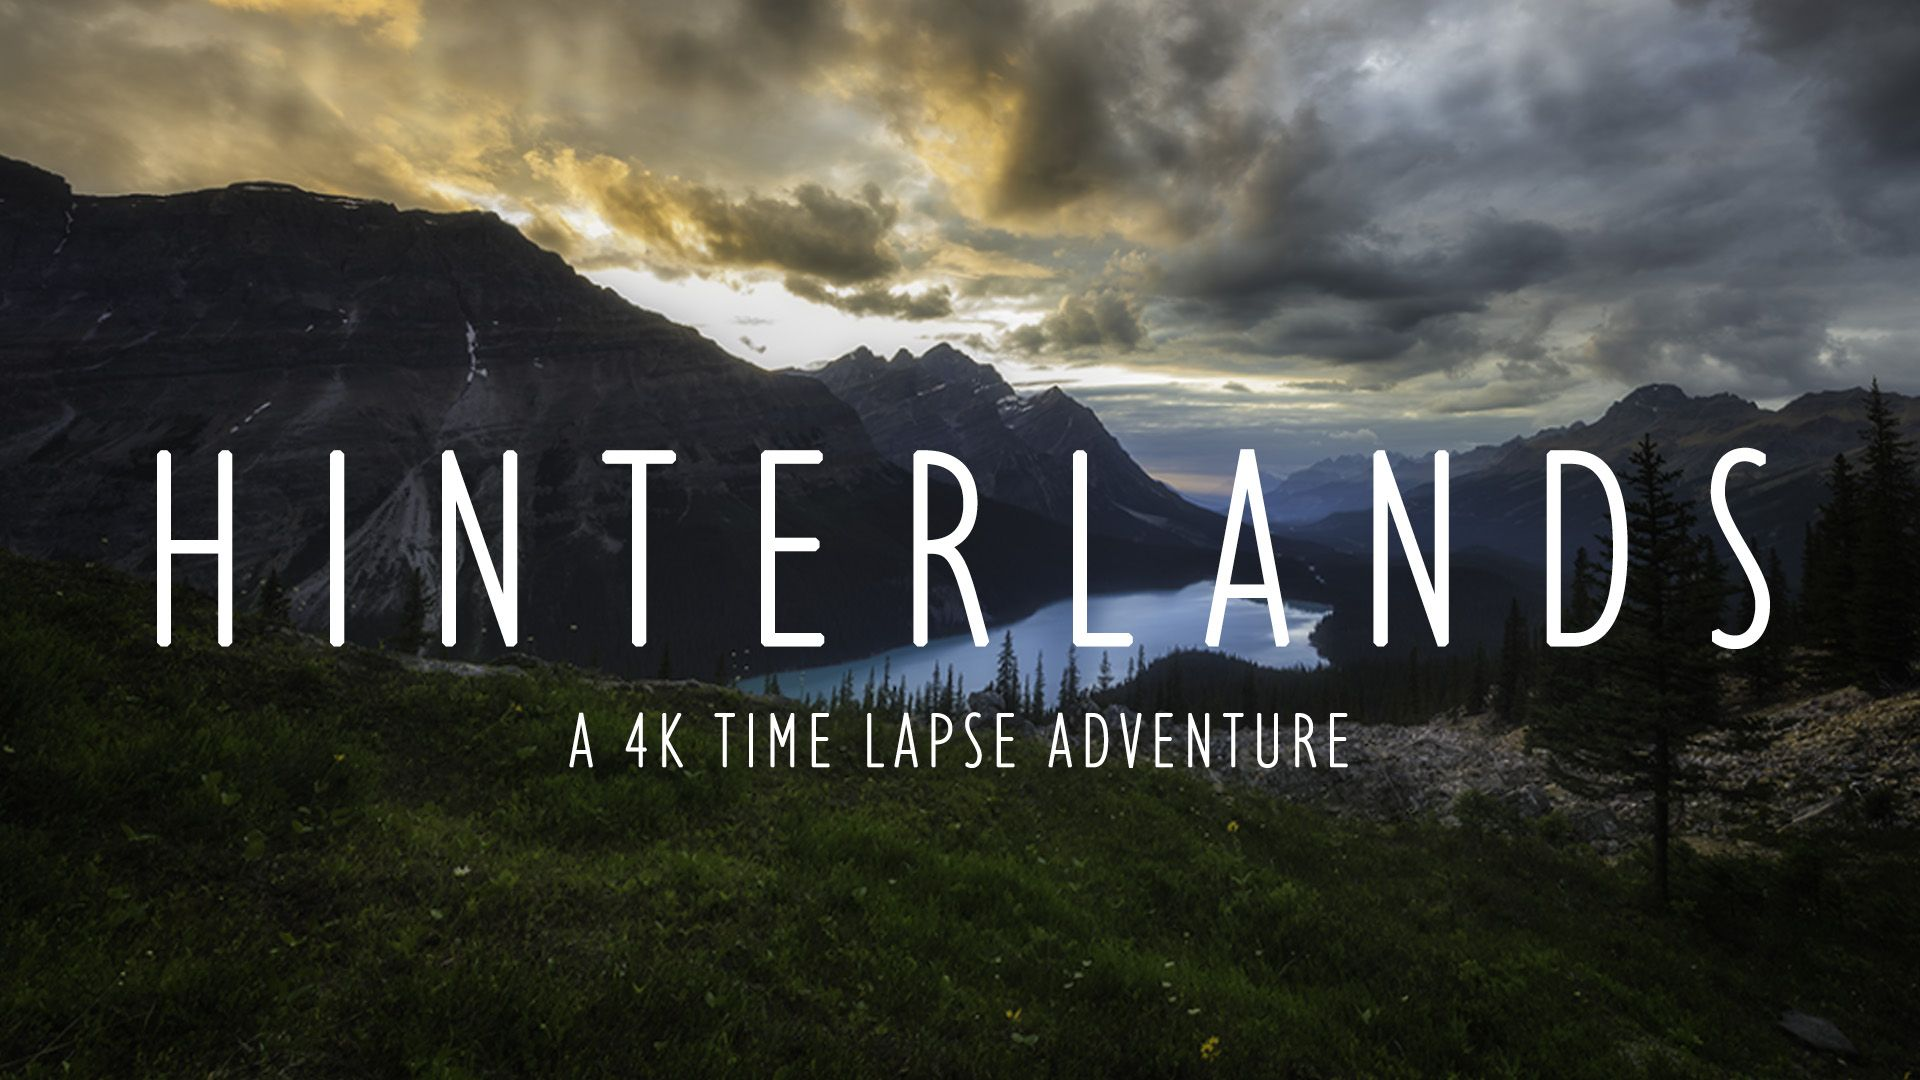 A time lapse adventure through the hinterlands of Canadas